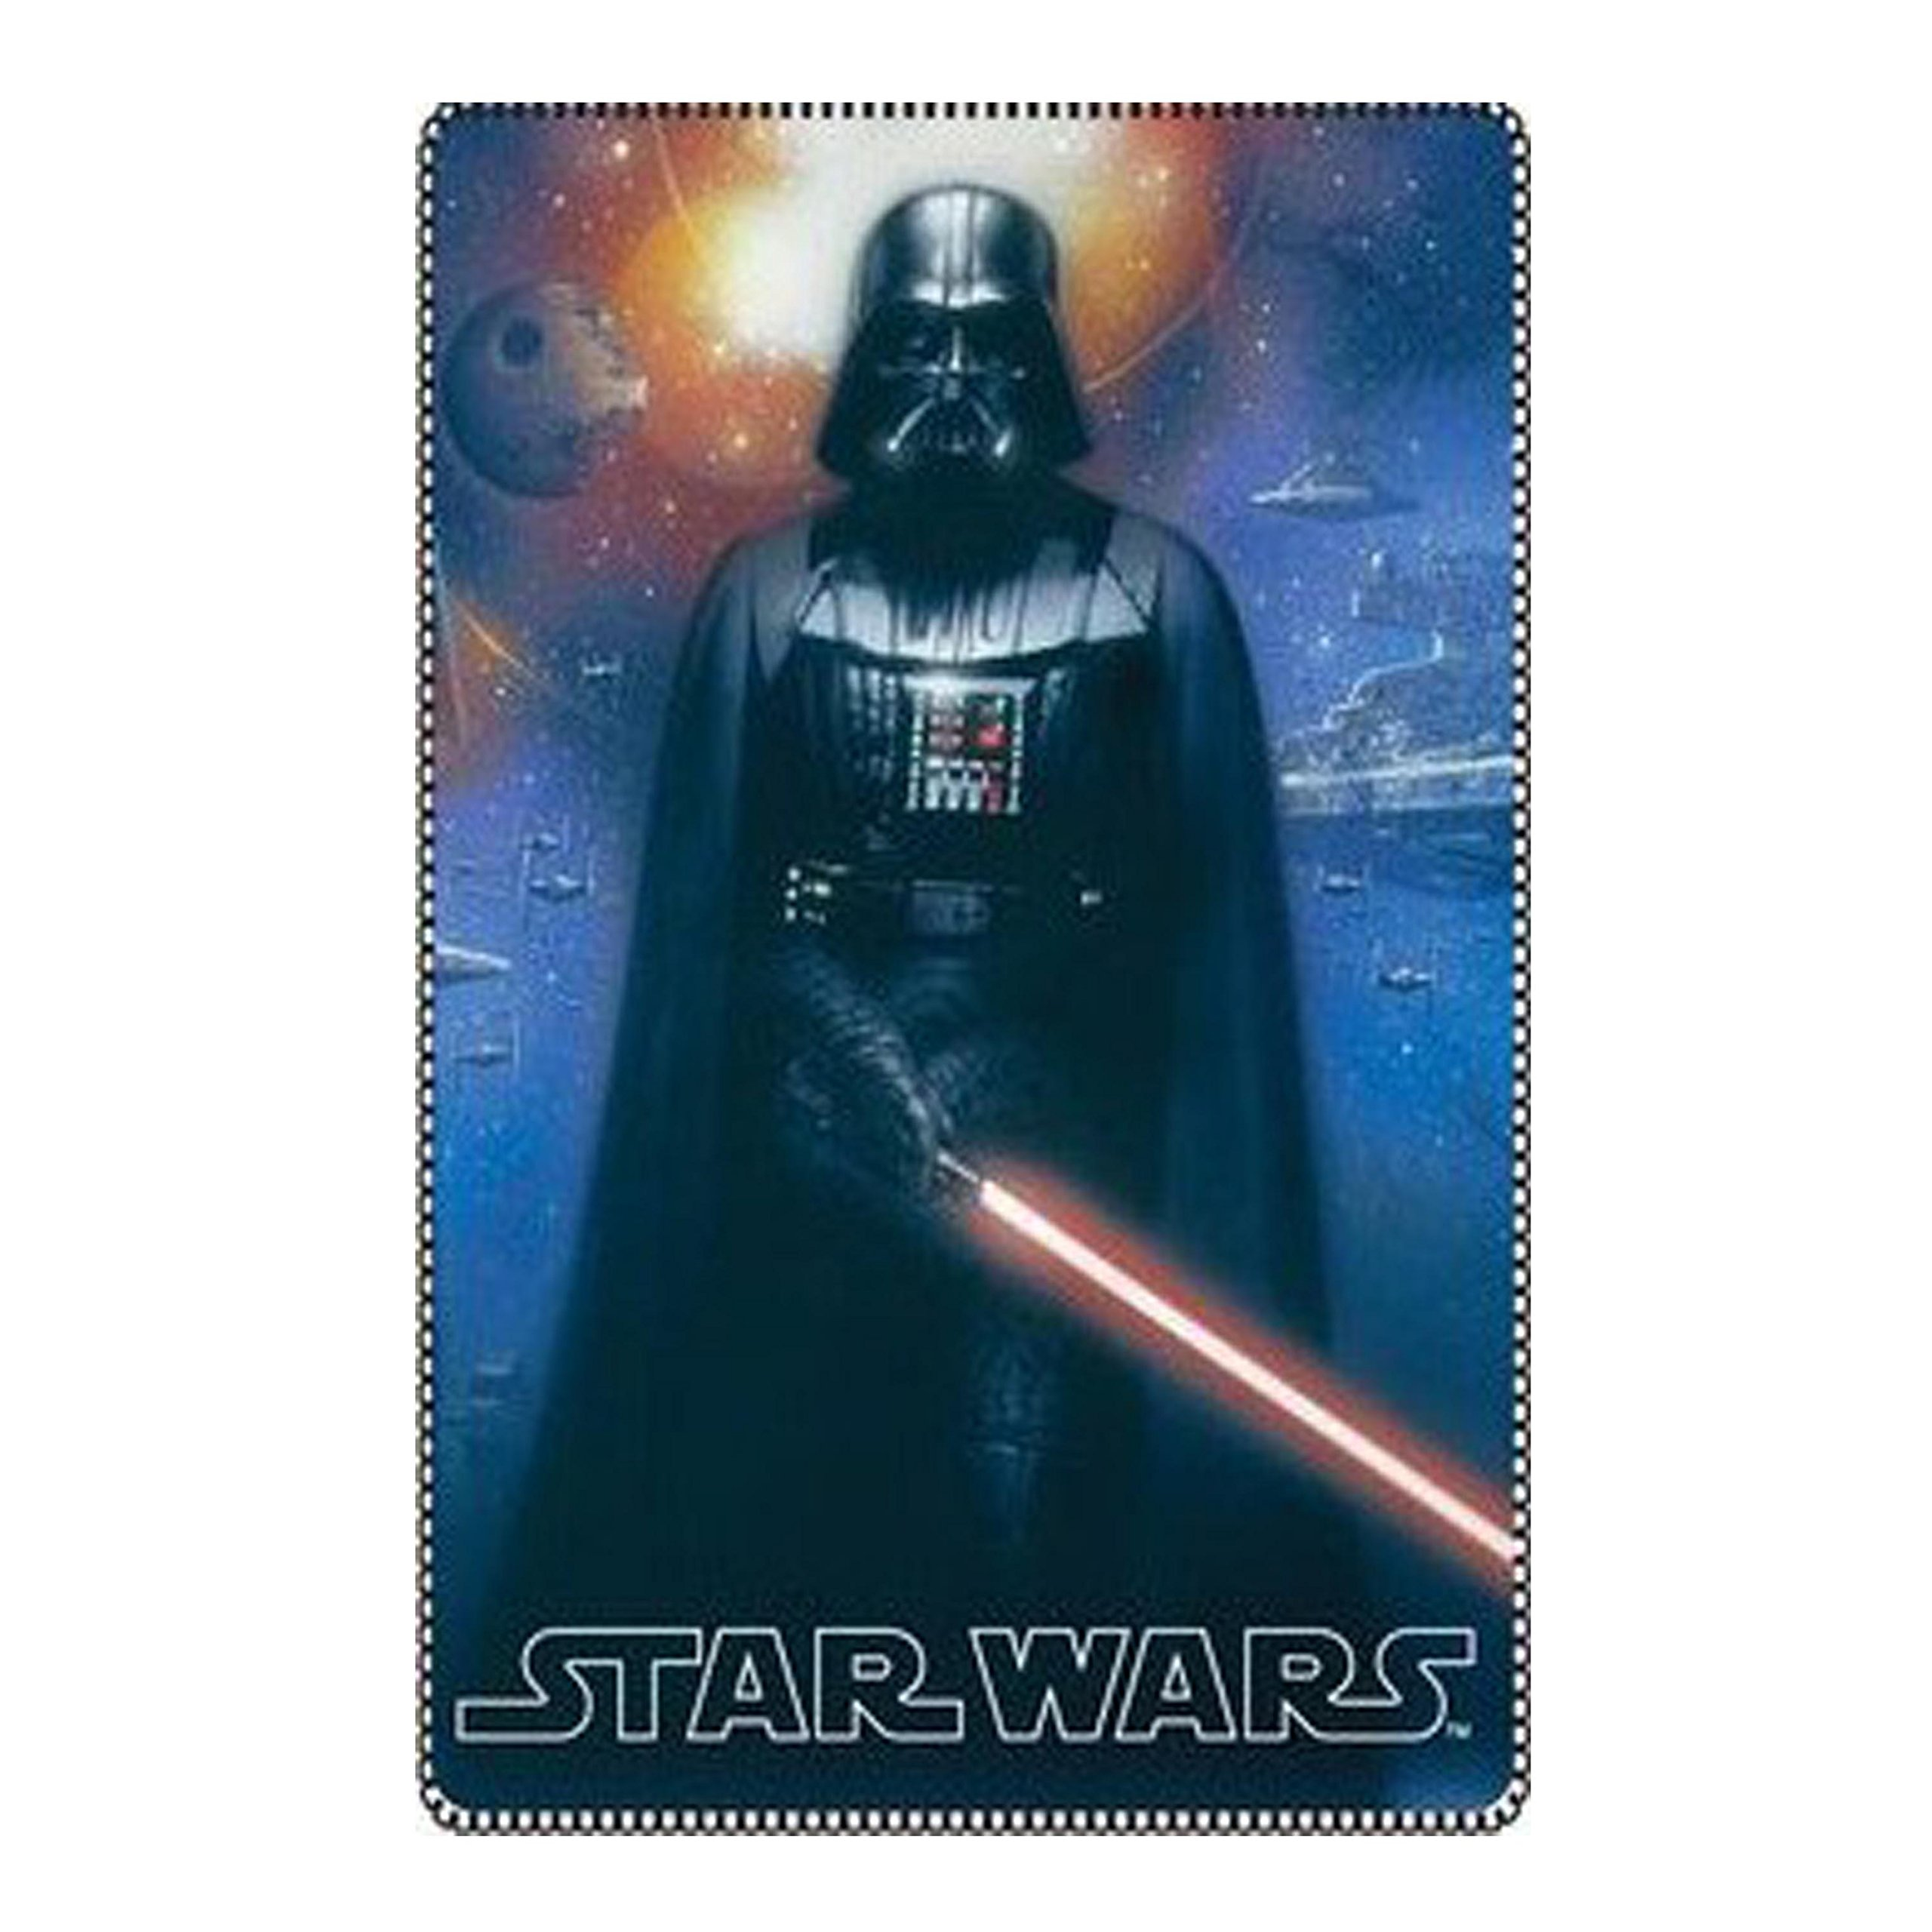 Star Wars Kids Fleece Blanket 40 x 59 inch with R2D2 and Darth Vader (Blue)